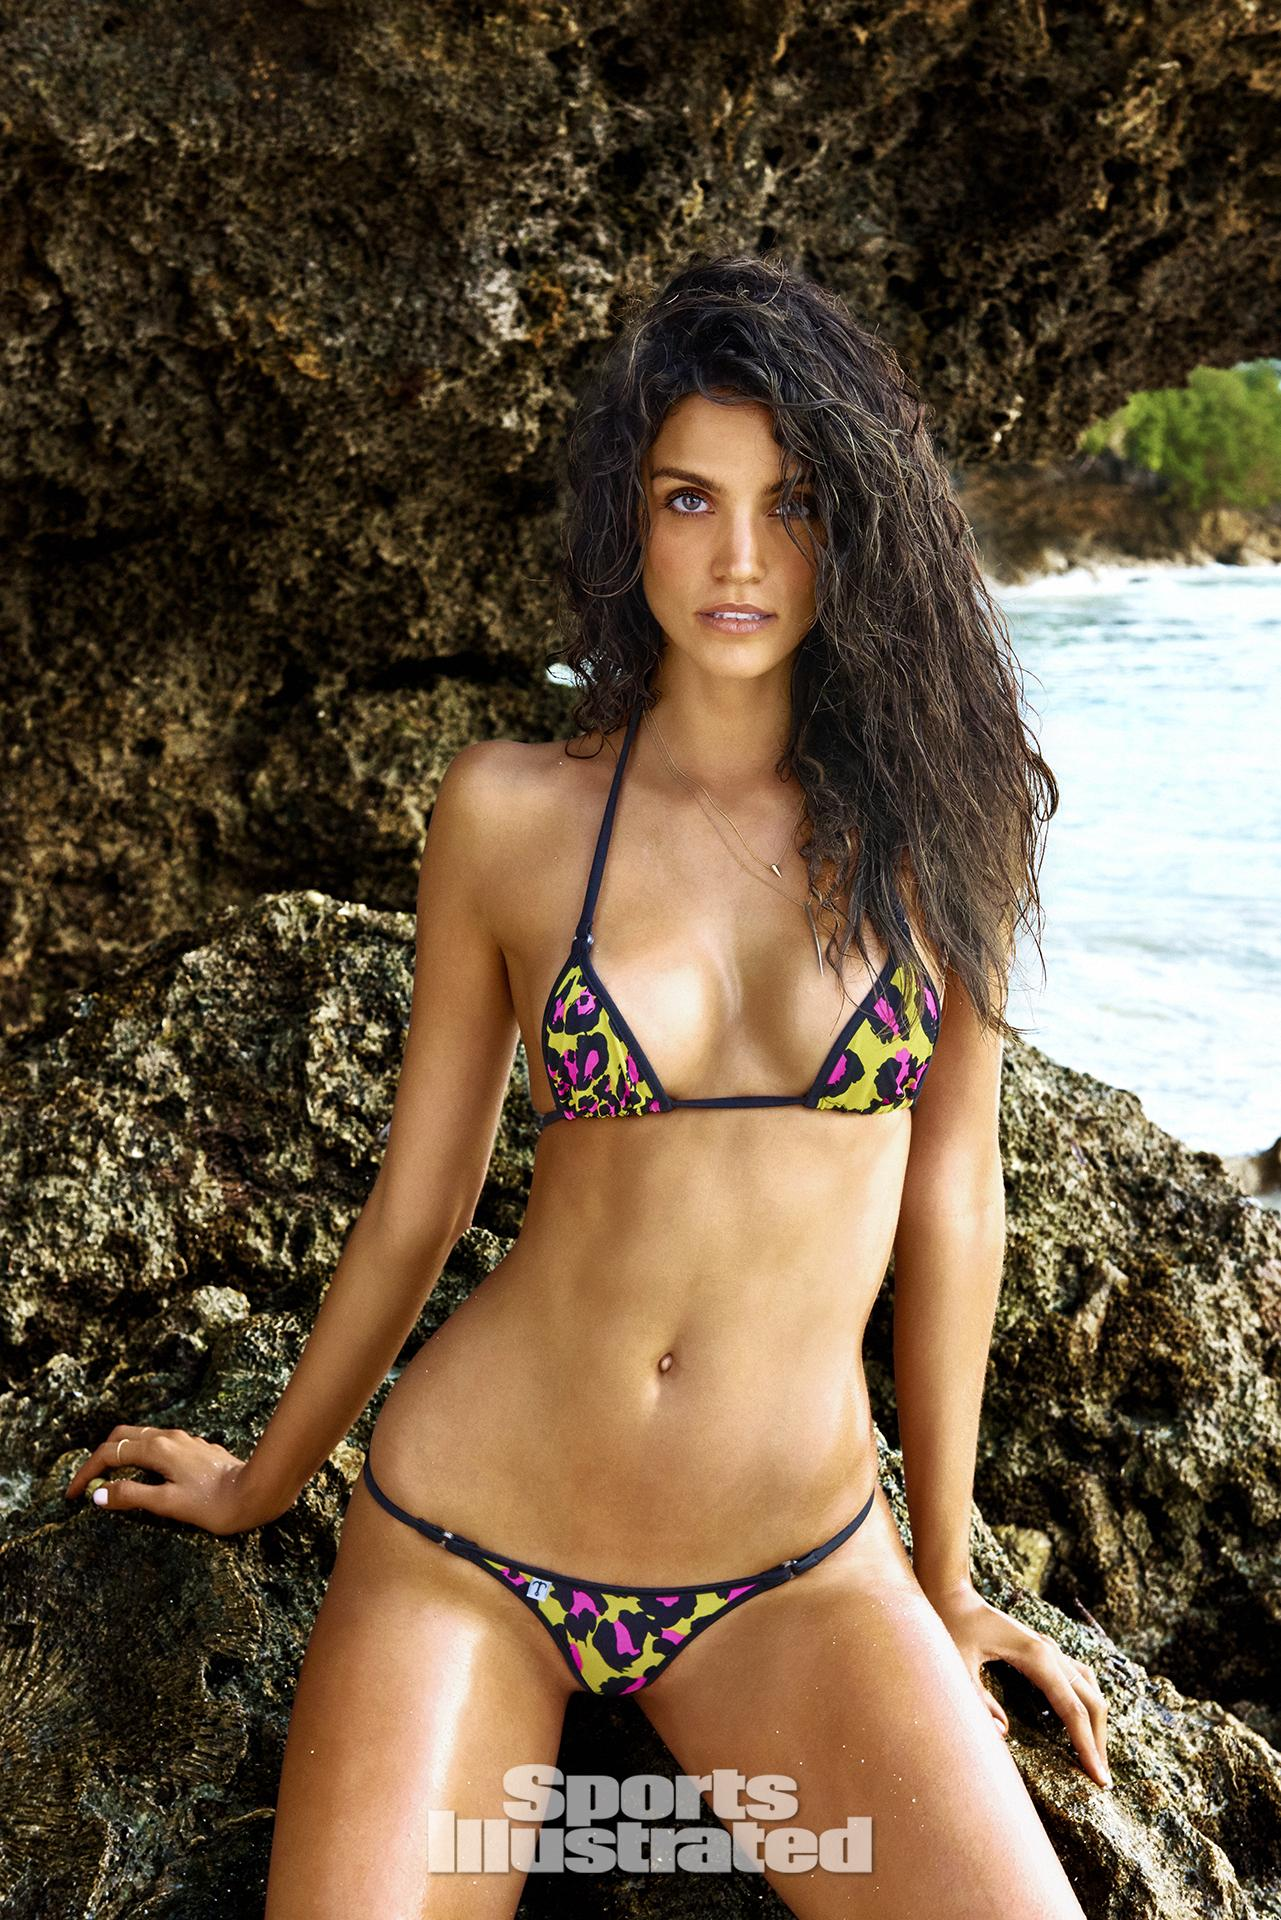 cameltoe sofia Sofia Resing was photographed by Ruven Afanador in Zanzibar. Swimsuit by  TeenyB Bikini Couture.